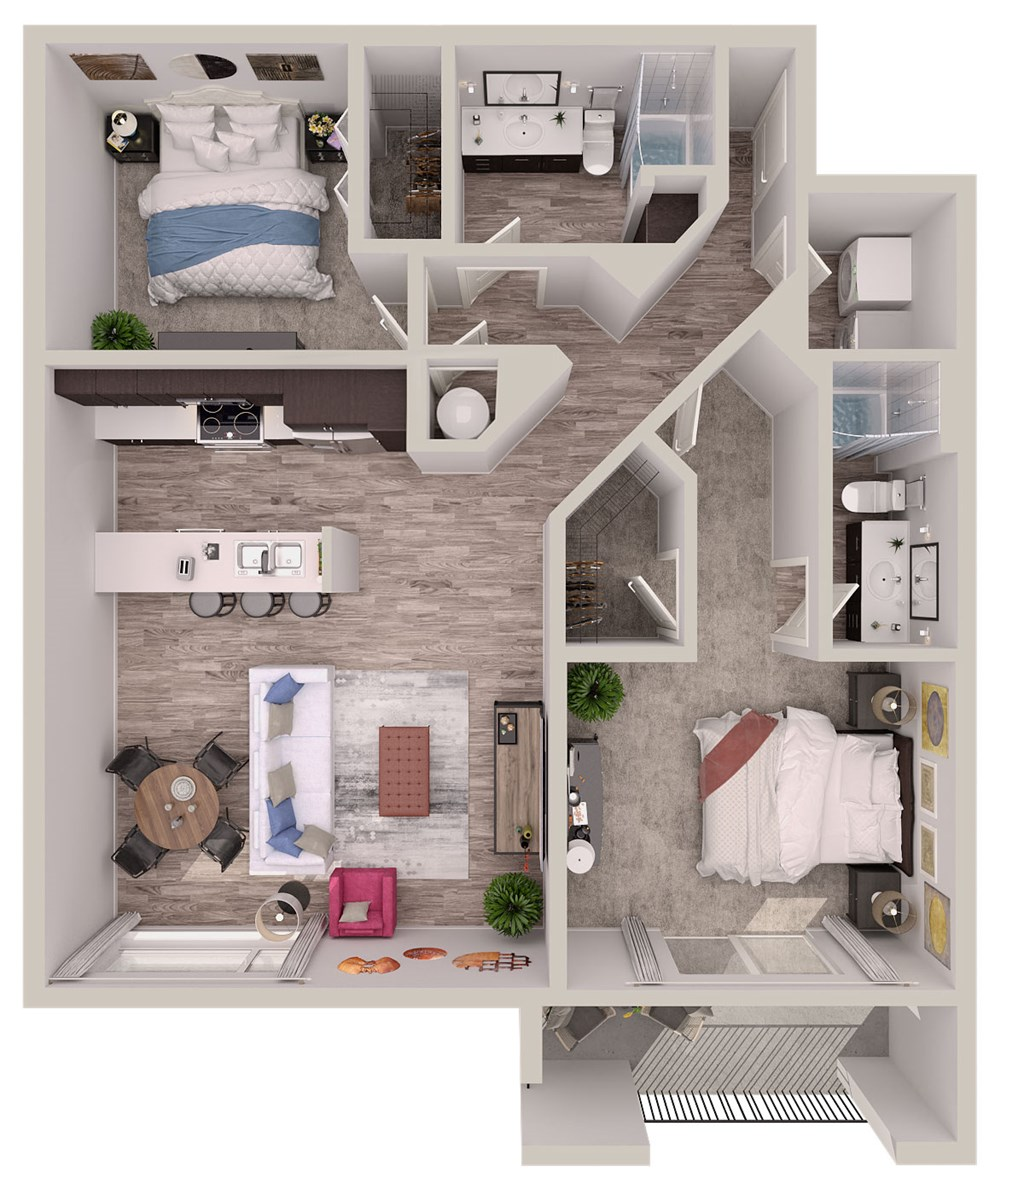 sofa-del-ray-b3-floor-plan